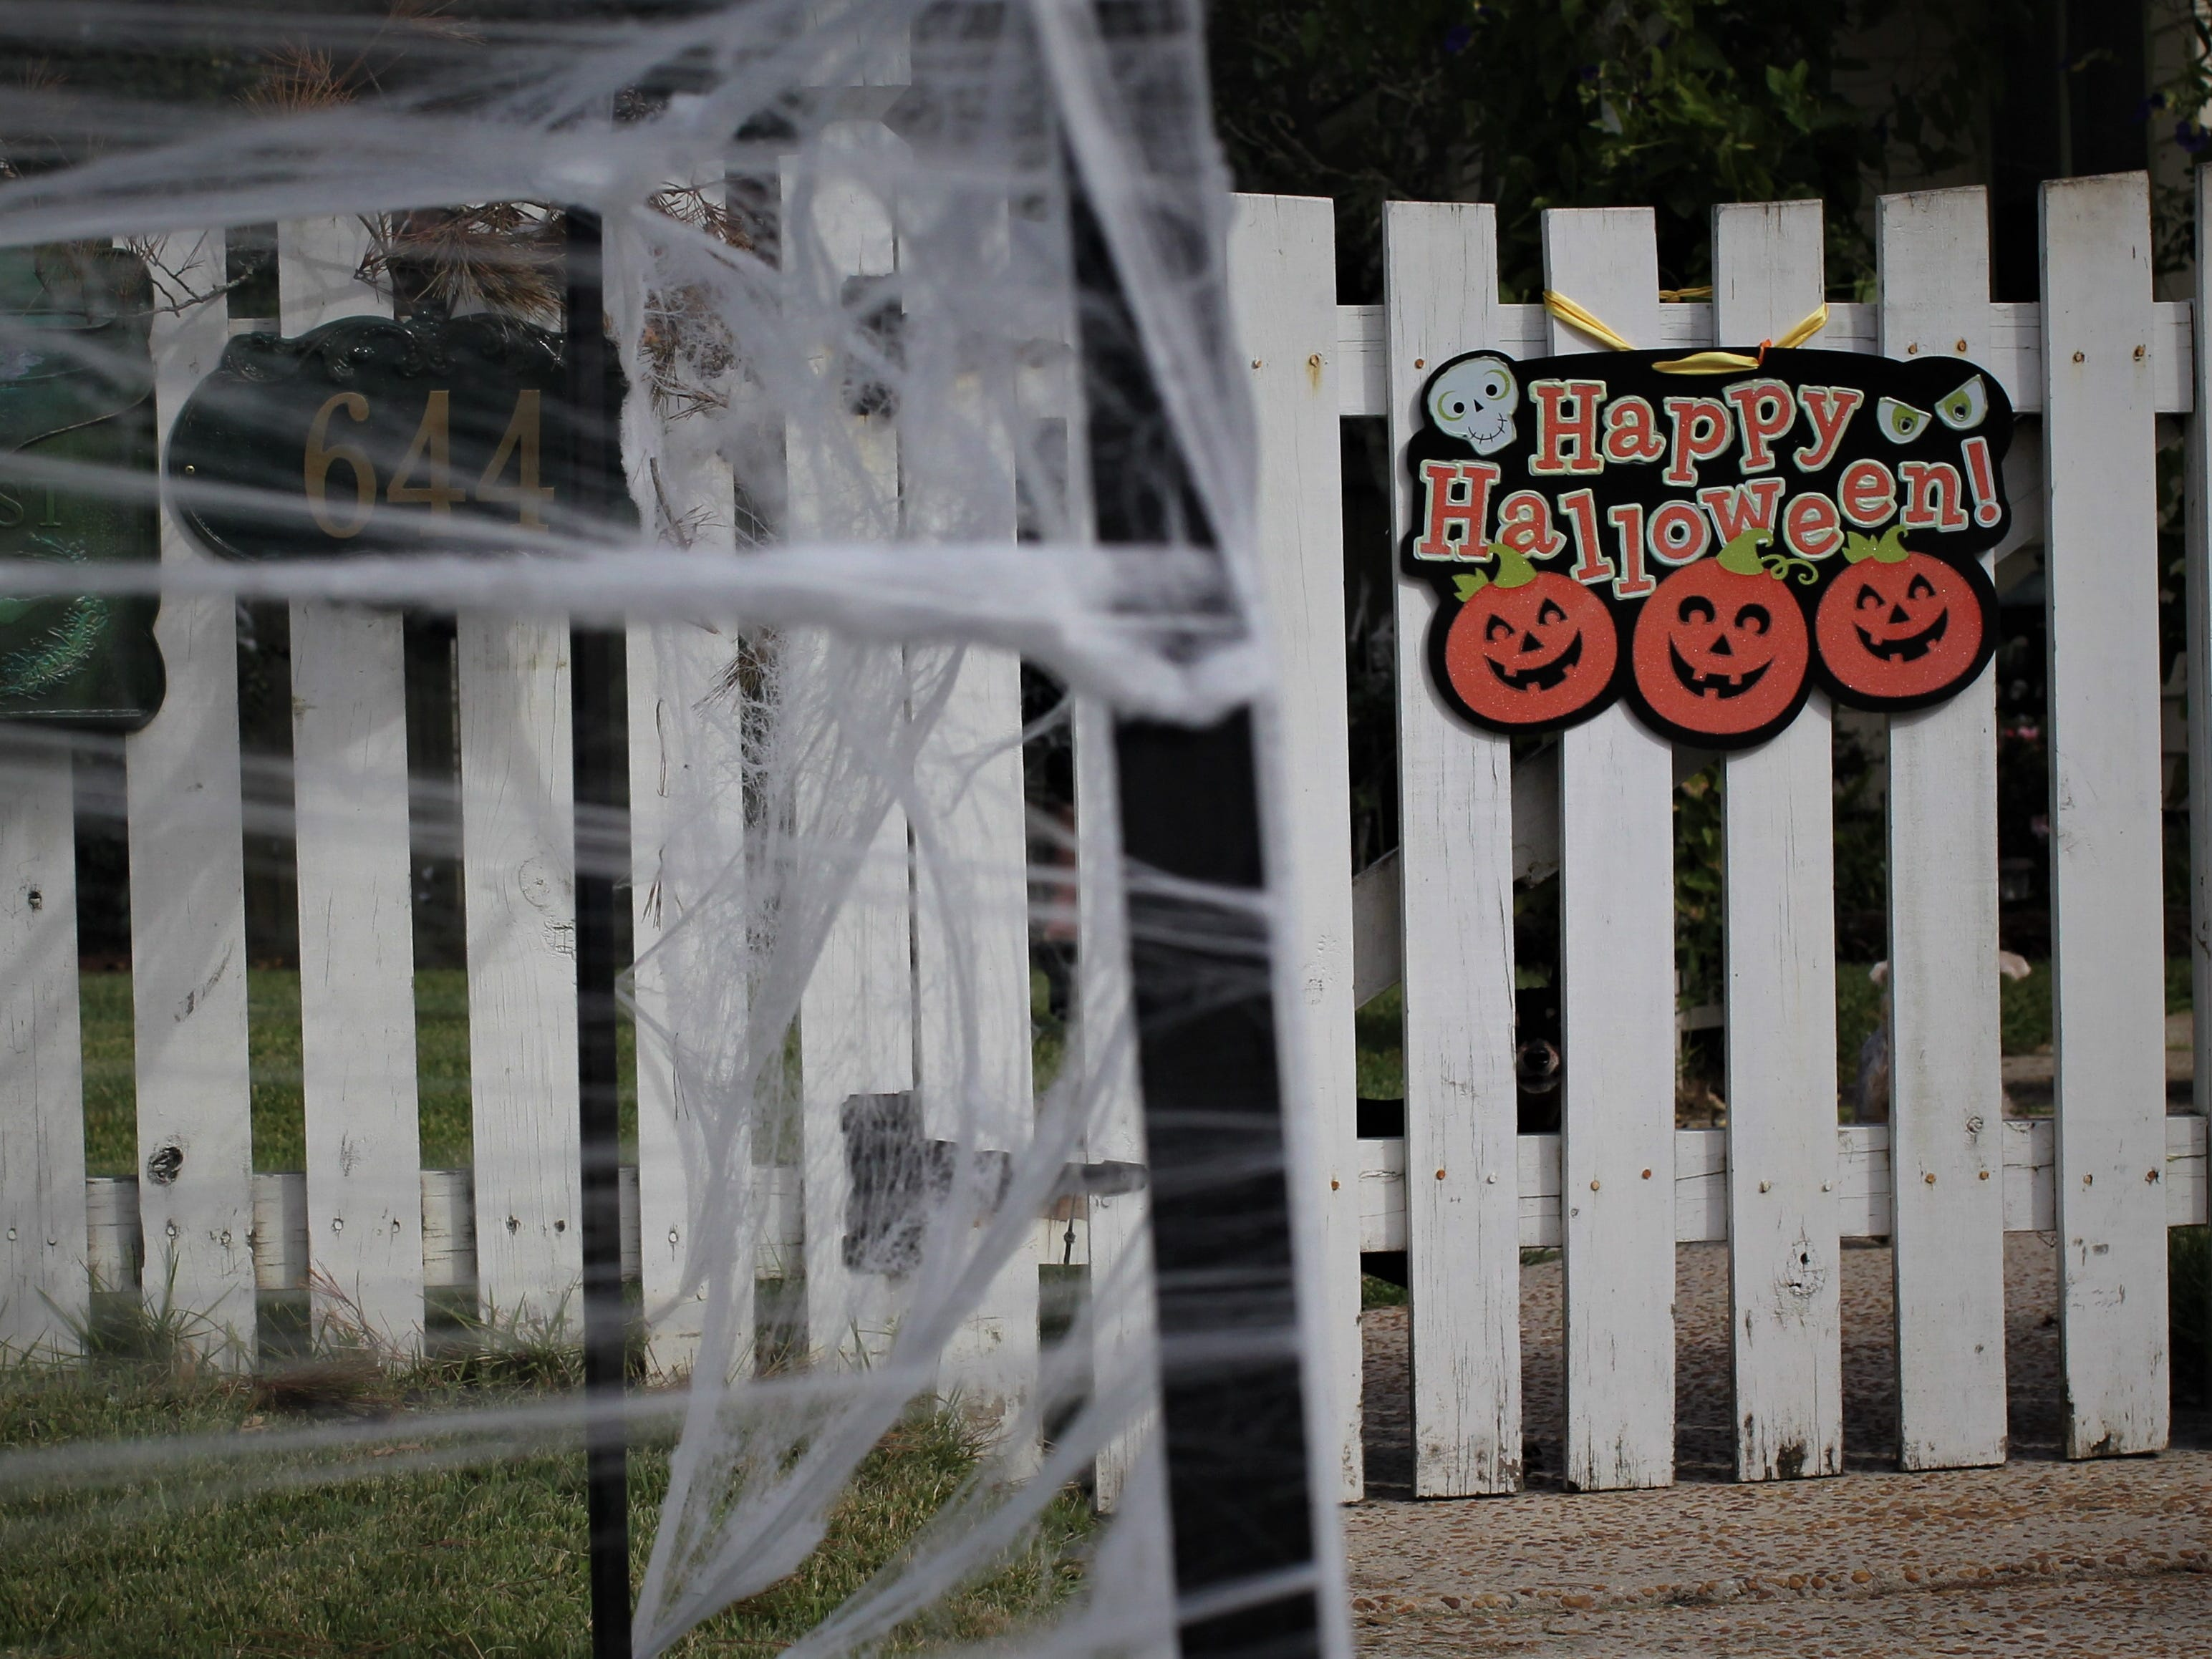 Houses along Beard Street and Ingleside Avenue in Tallahassee's Midtown neighborhood near Lafayette Park get prepared for Halloween. The holiday draws thousands of children for trick-or-treating.